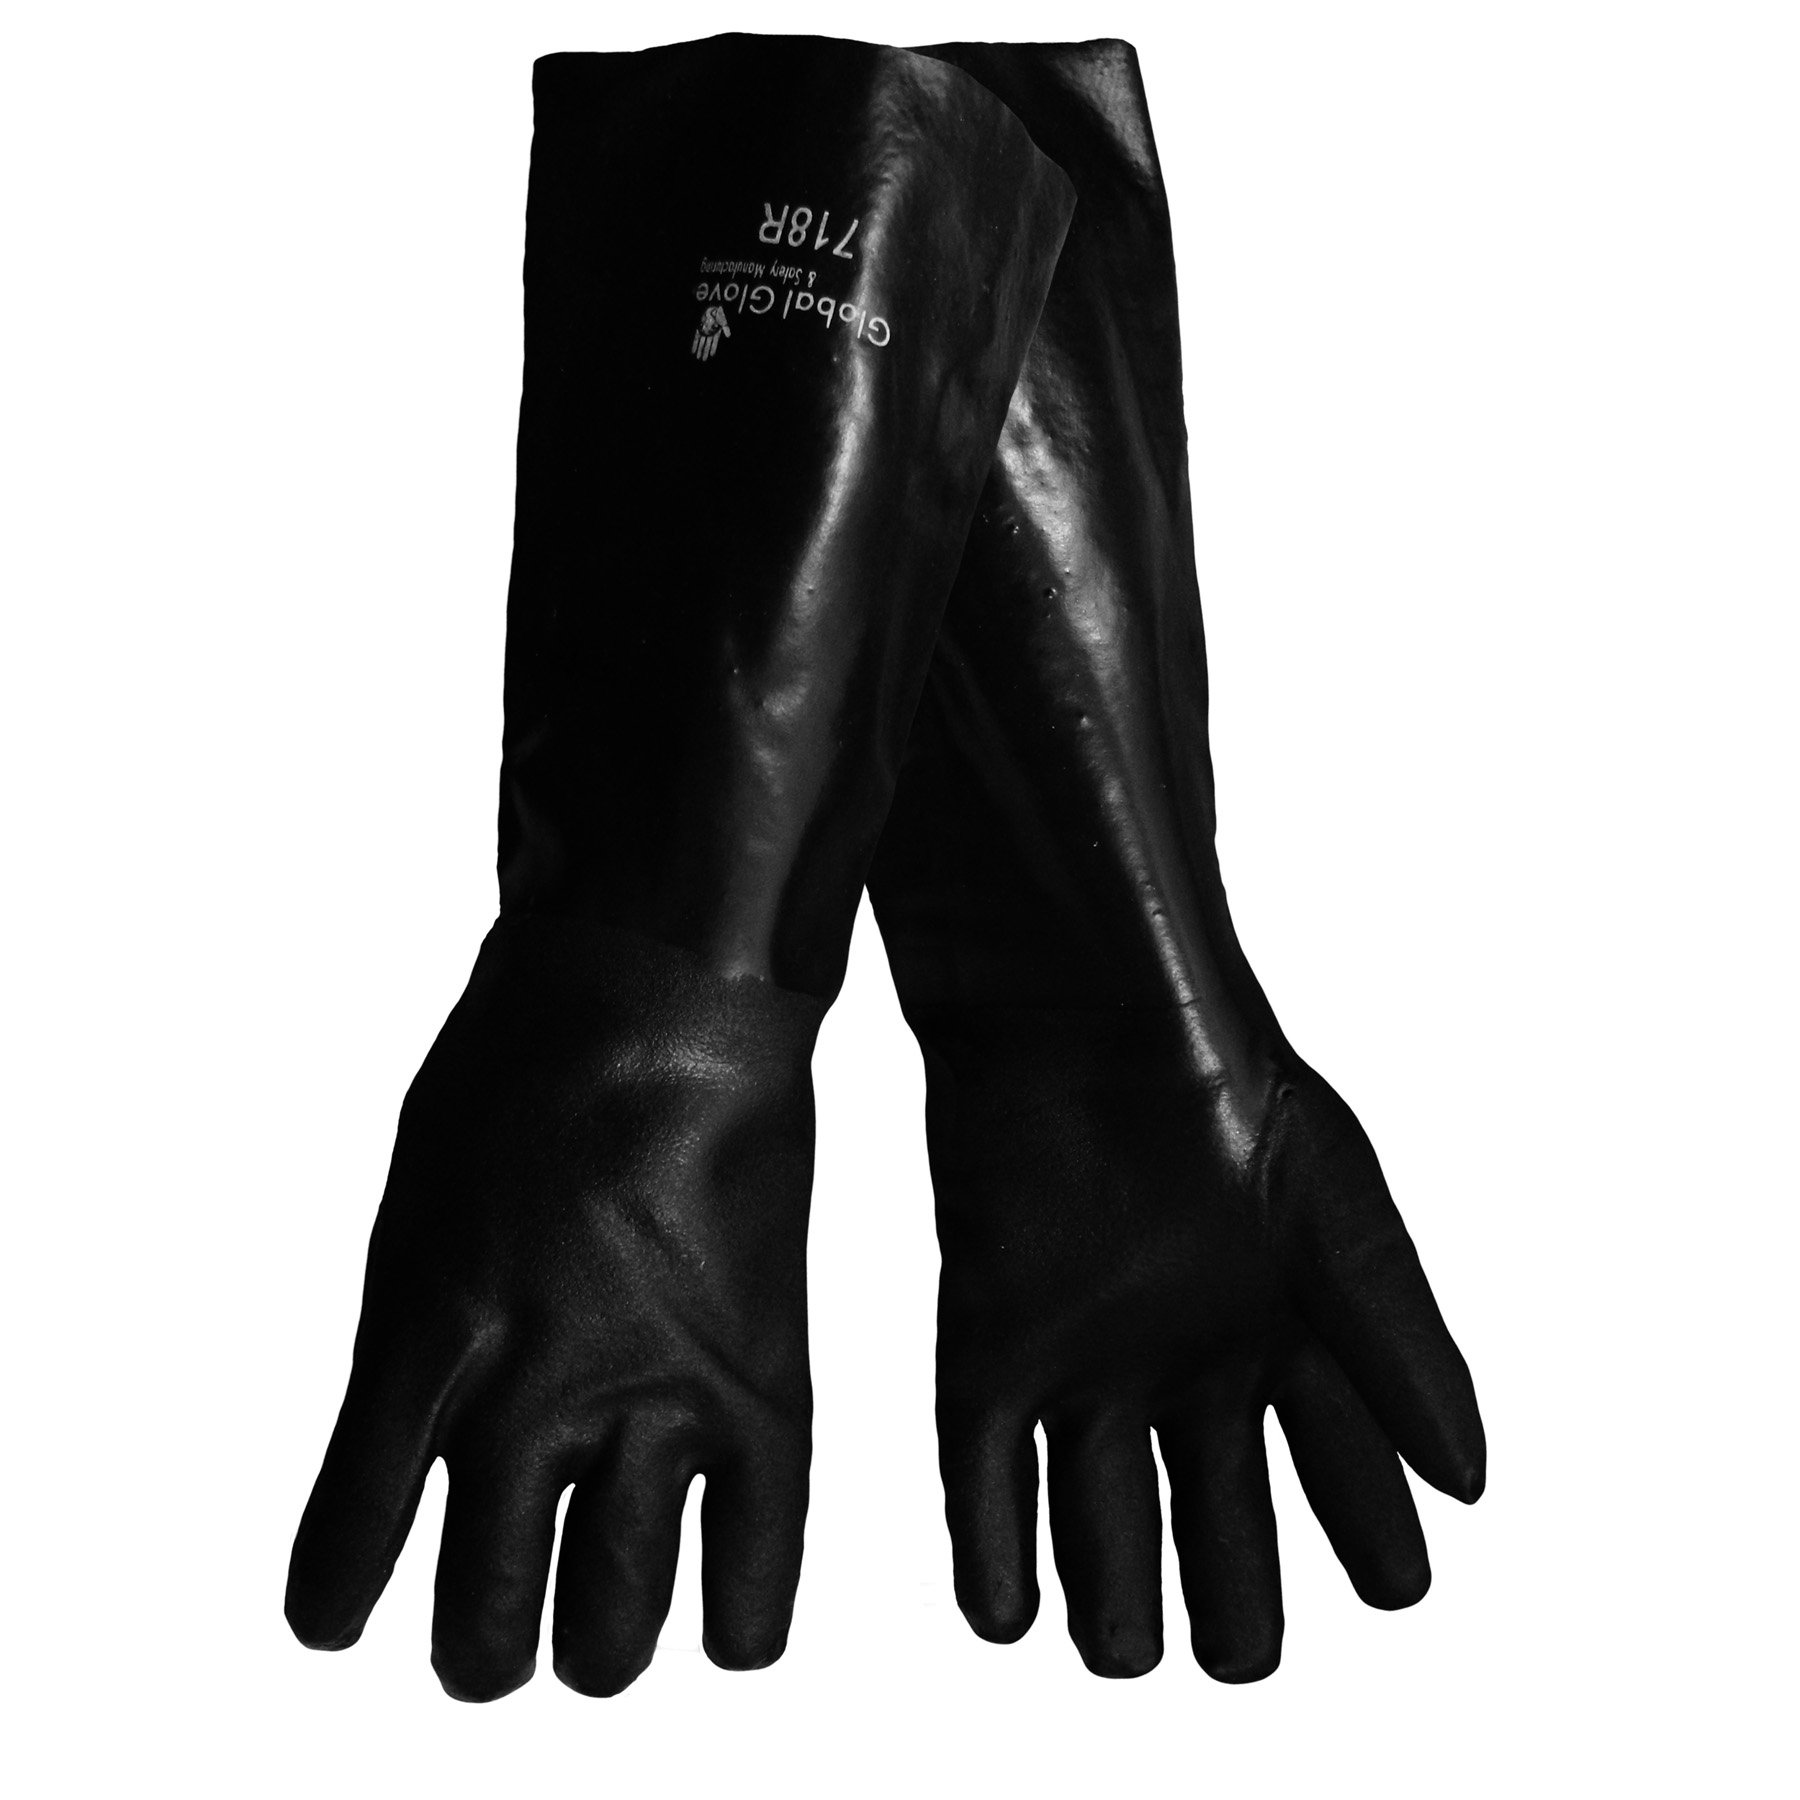 Global Glove 700 FrogWear PVC Jersey Lined Premium Glove with Knit Wrist Cuff, Chemical Resistent, Elbow Length, Extra Large, Black (Case of 72)